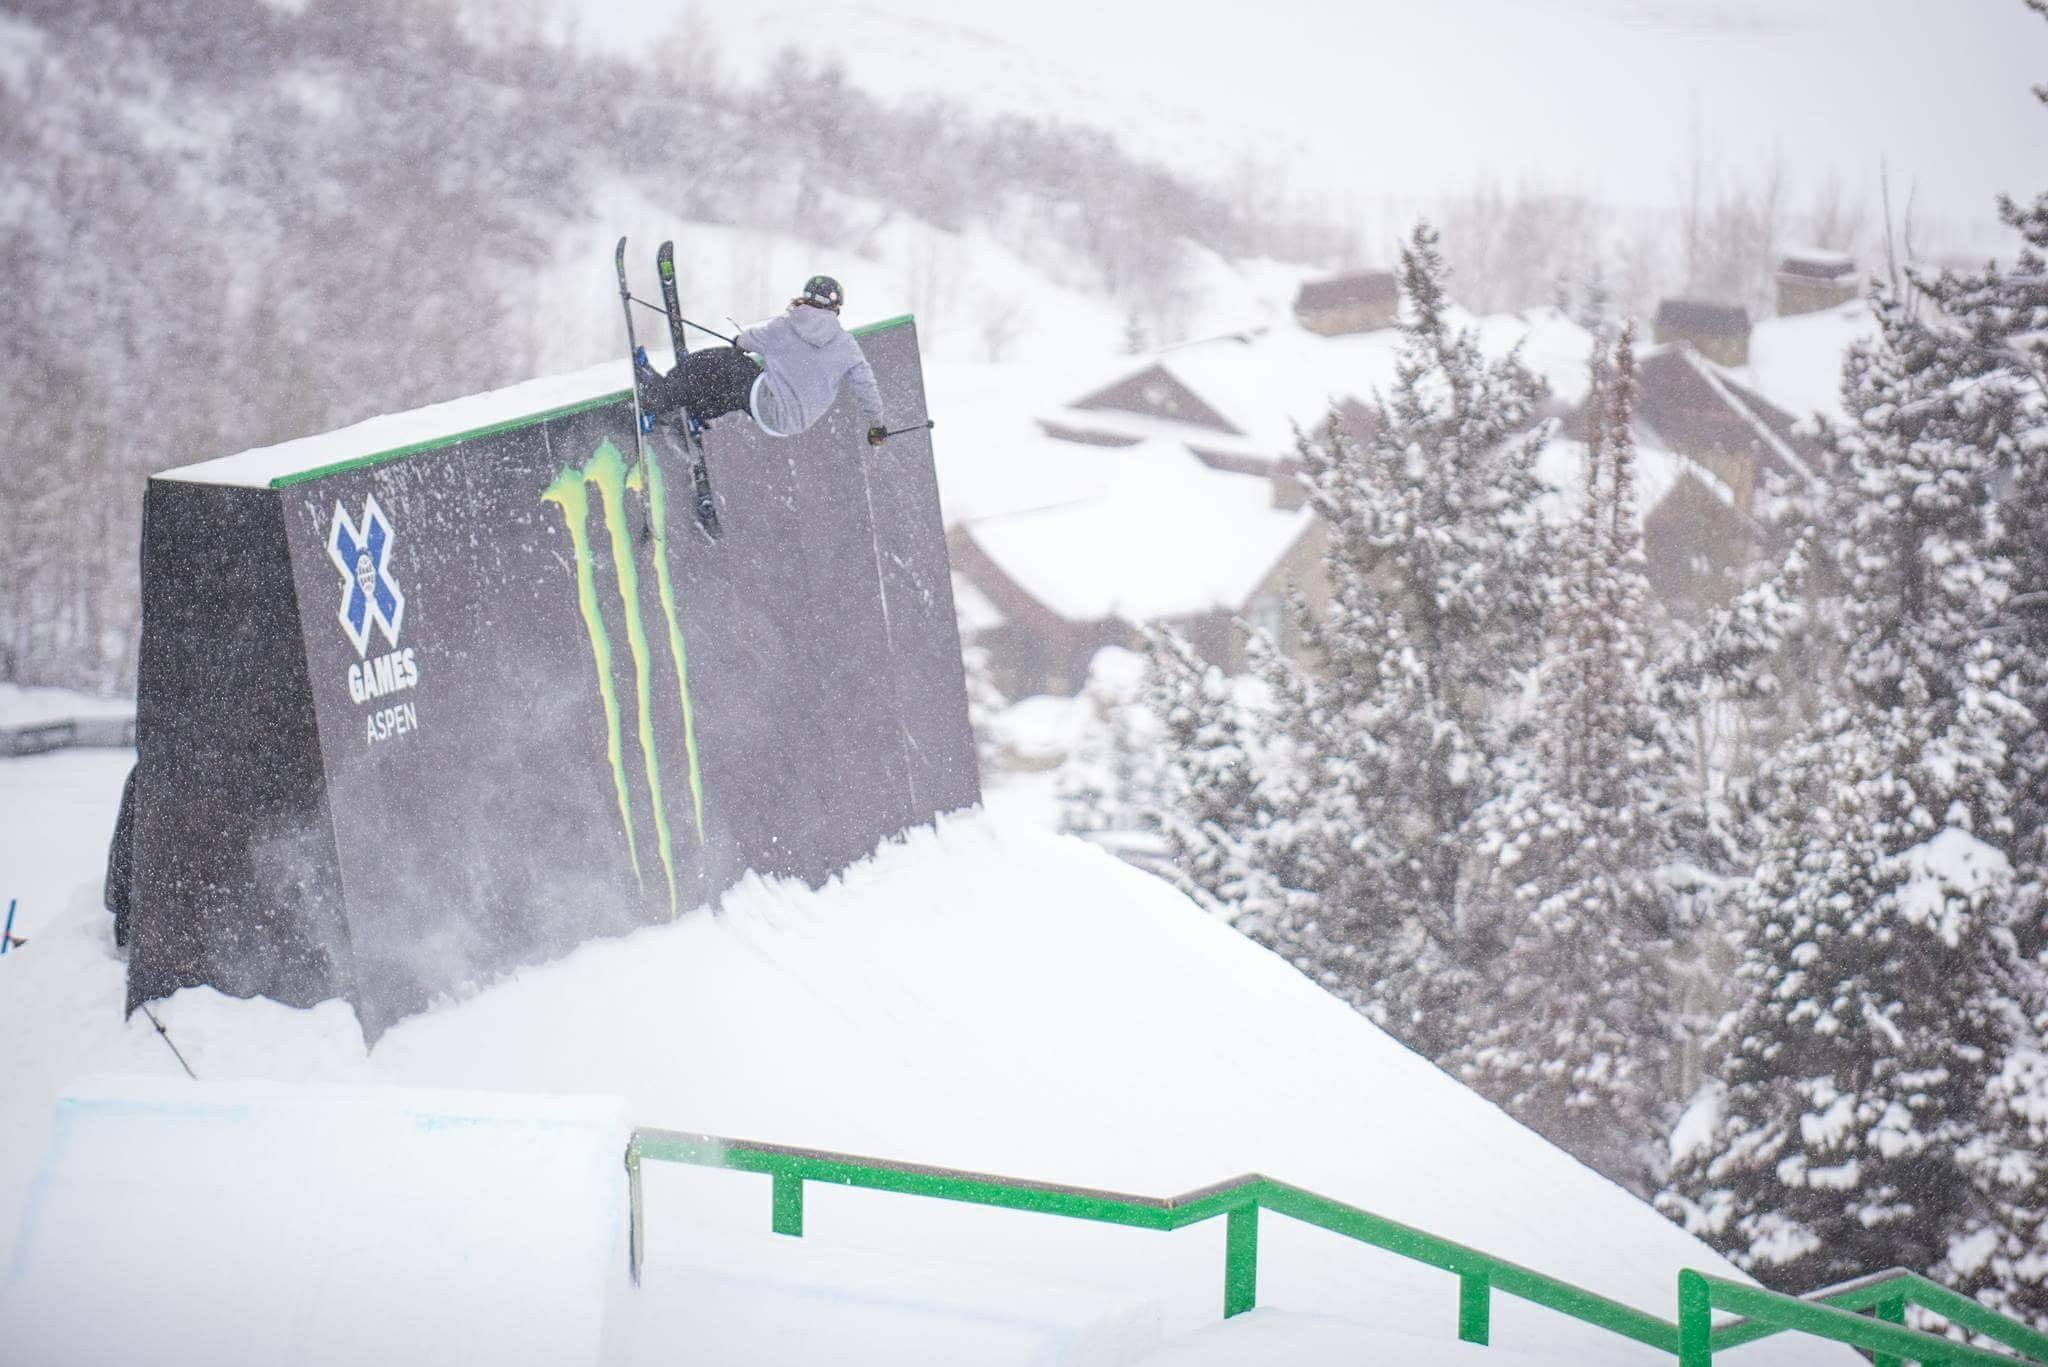 Mixing it up on the X Games Slopestyle course in Aspen | Credit: Rachel Bock (https://www.instagram.com/b0ckmeister)